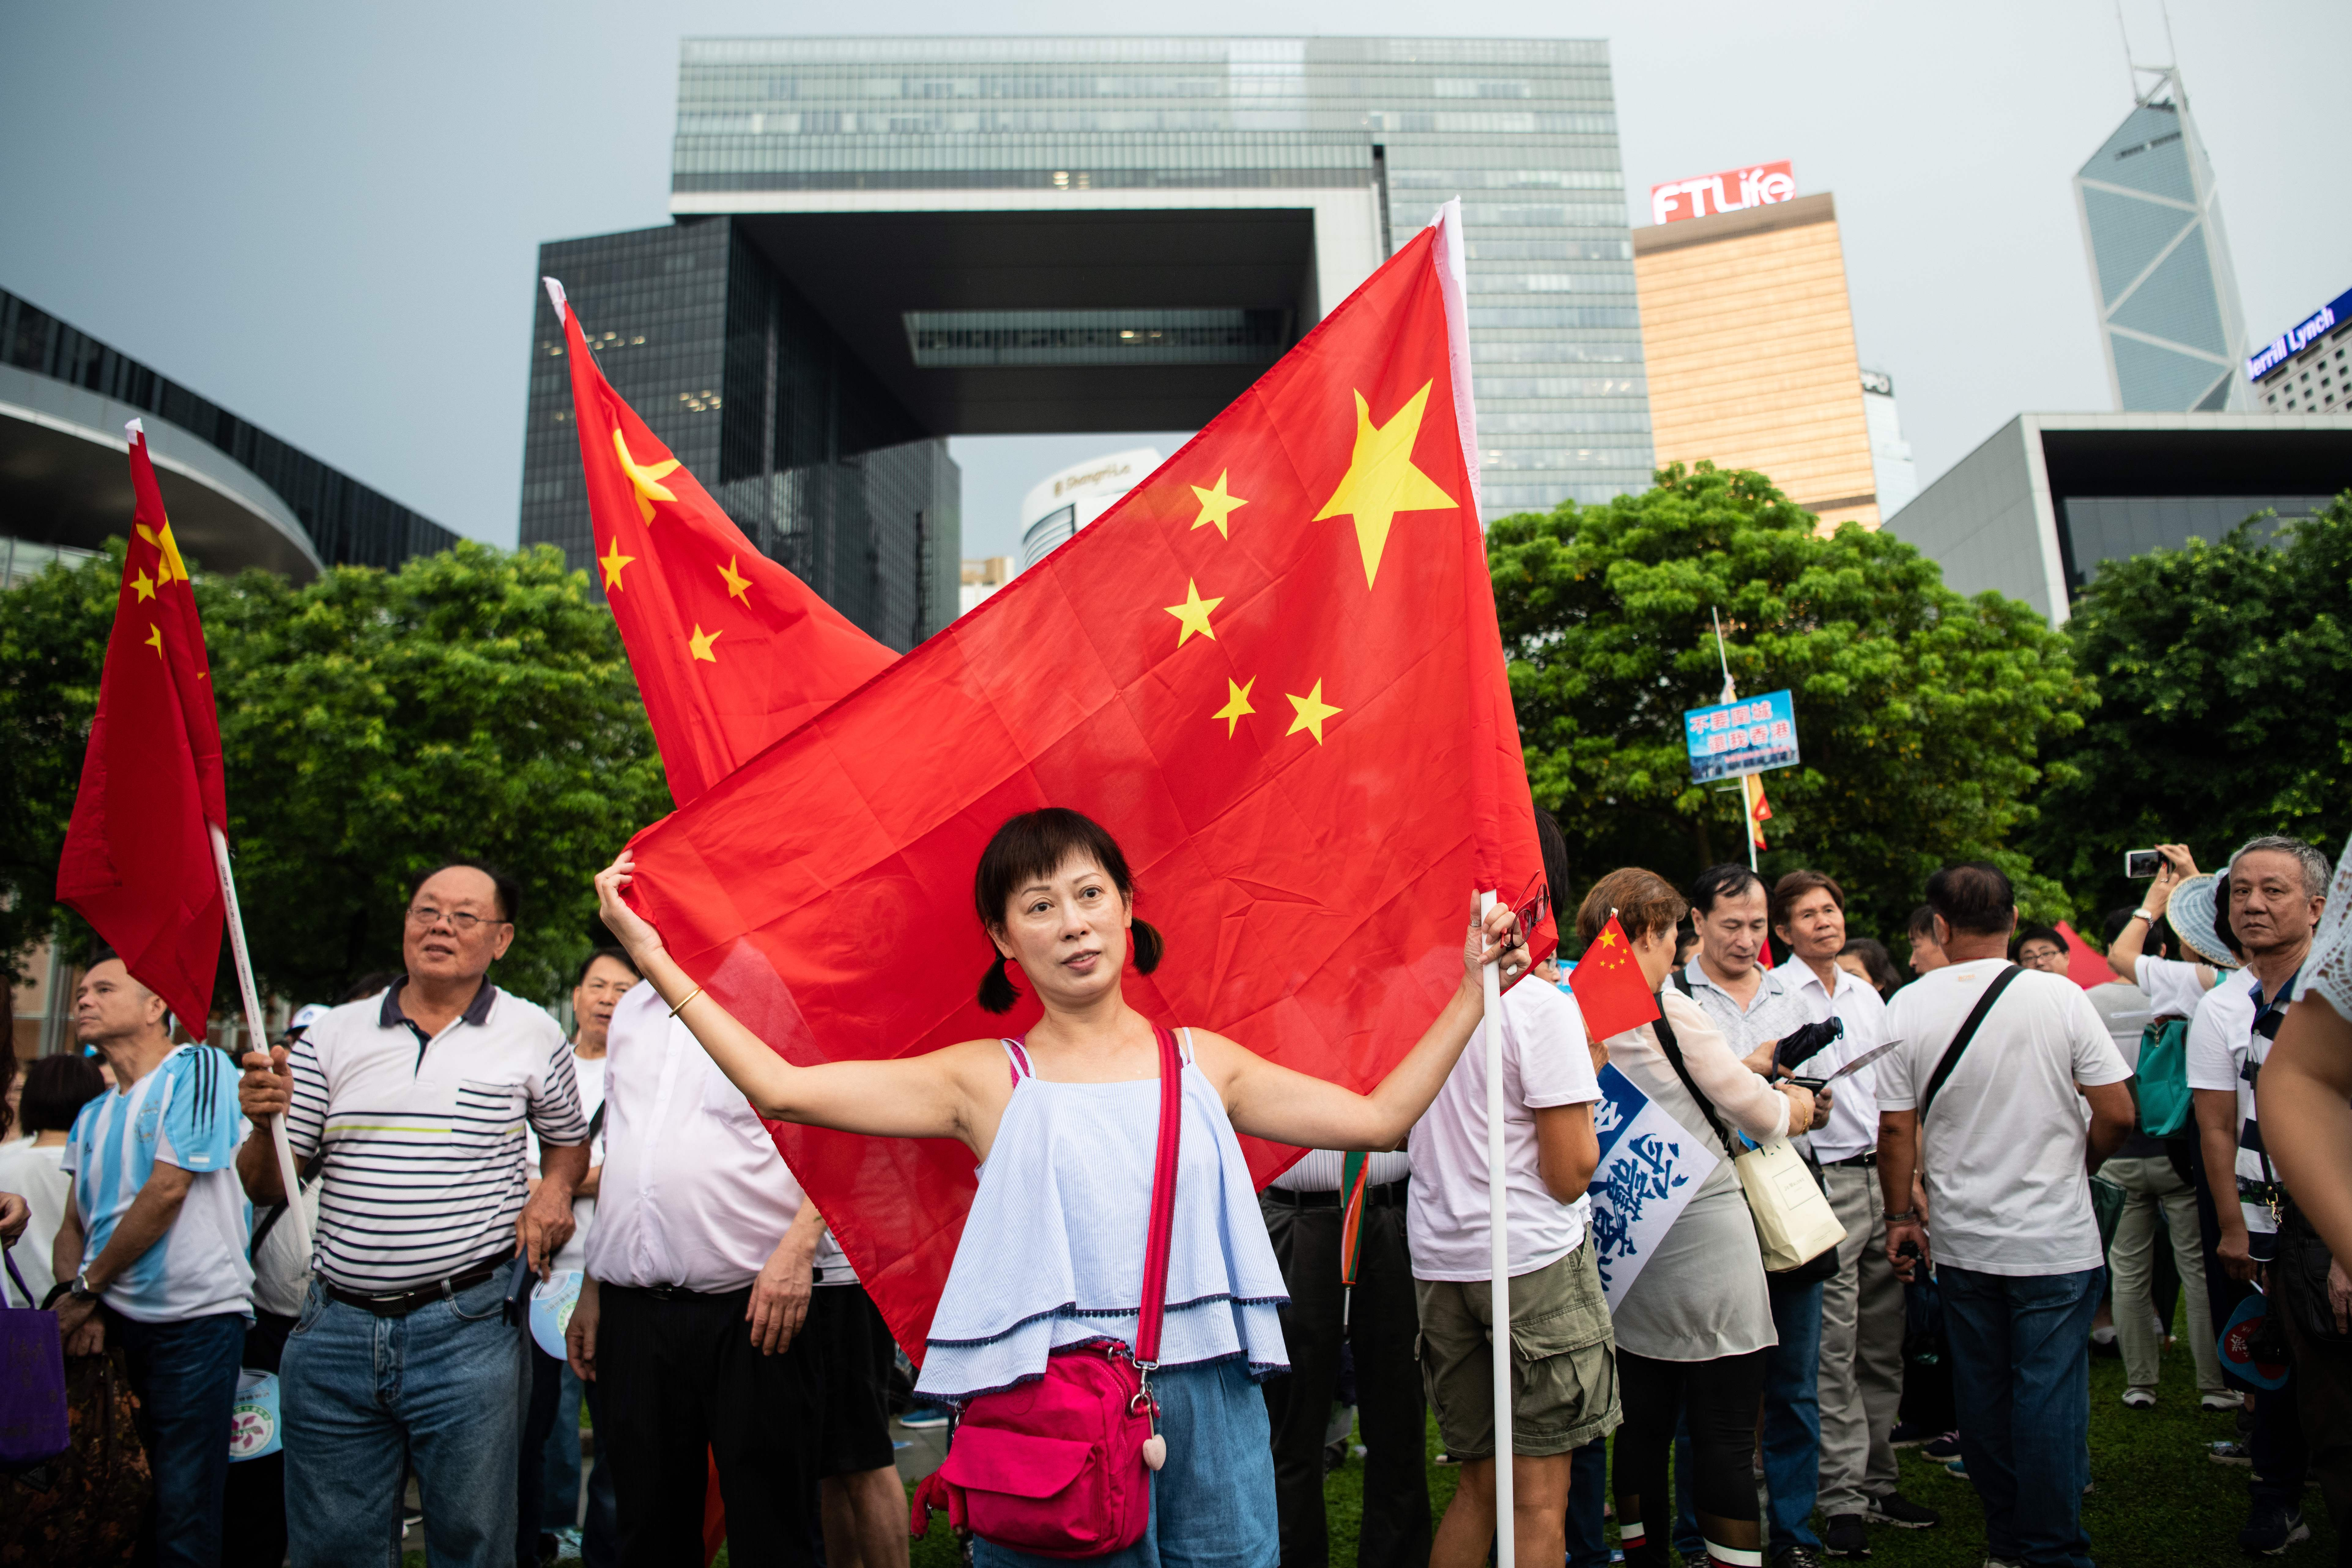 Chinese flags are waved at a rally in support of the police in Hong Kong on July 20, 2019.